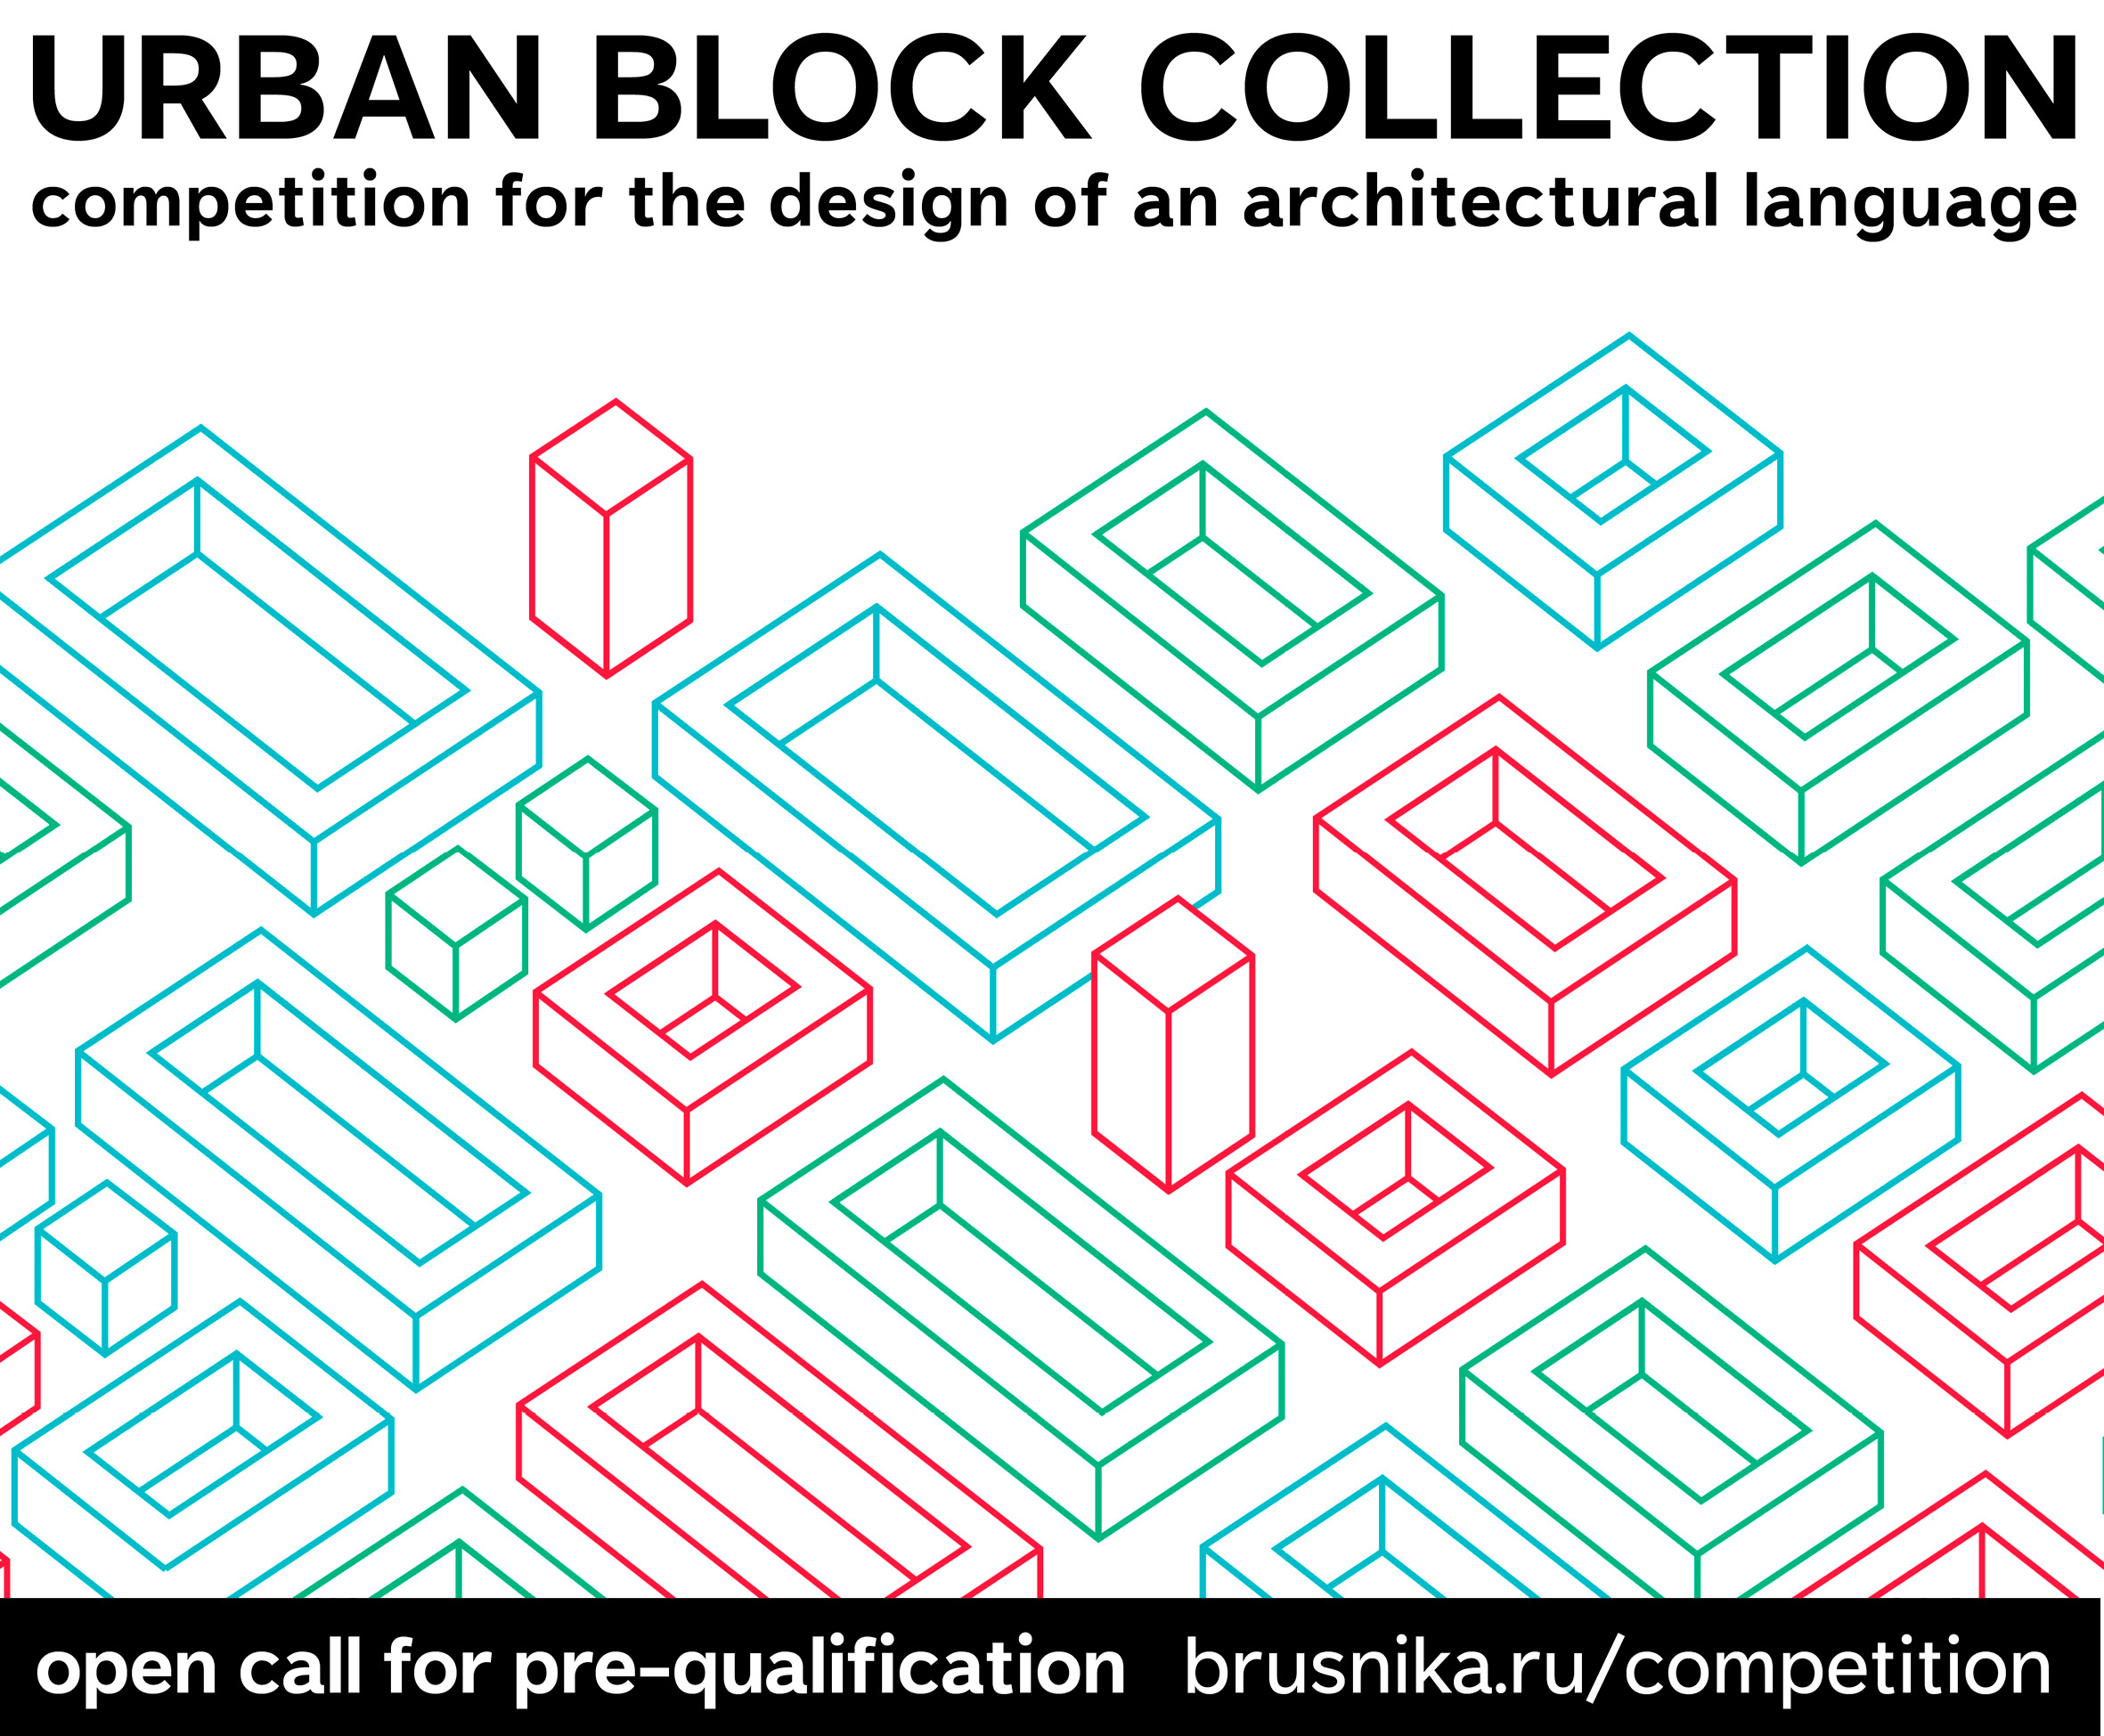 medium resolution of  urban block collection open call for pre qualification block diagram reduction matlab www brusnika ru competition